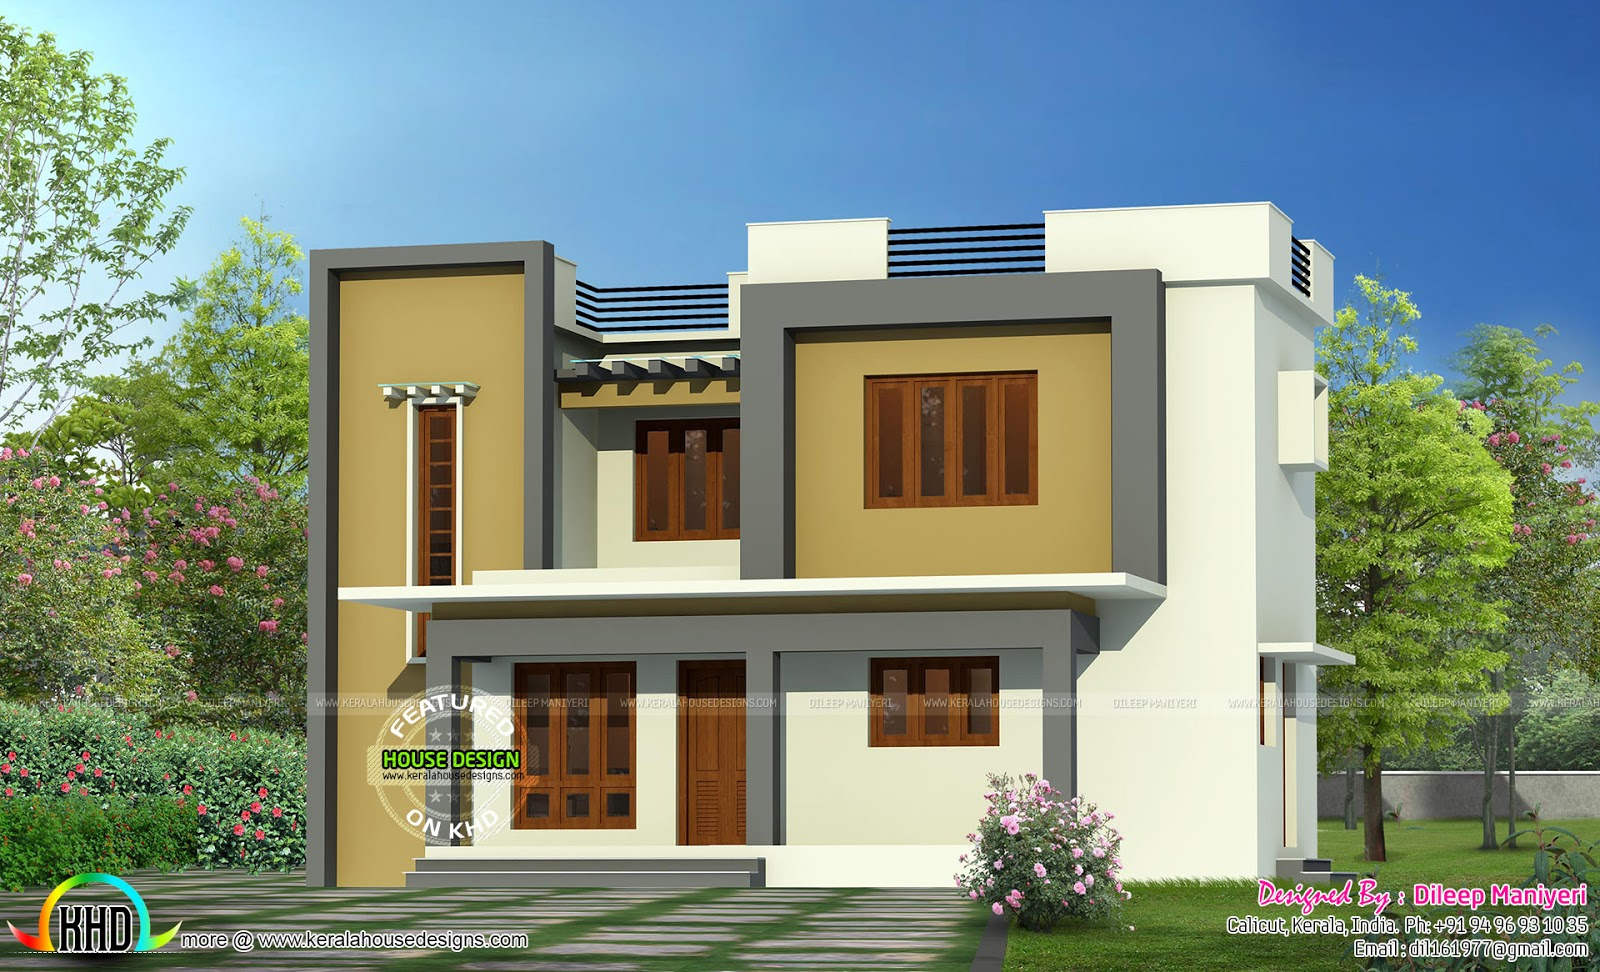 Simple flat roof home architecture kerala home design for Simple kerala home designs